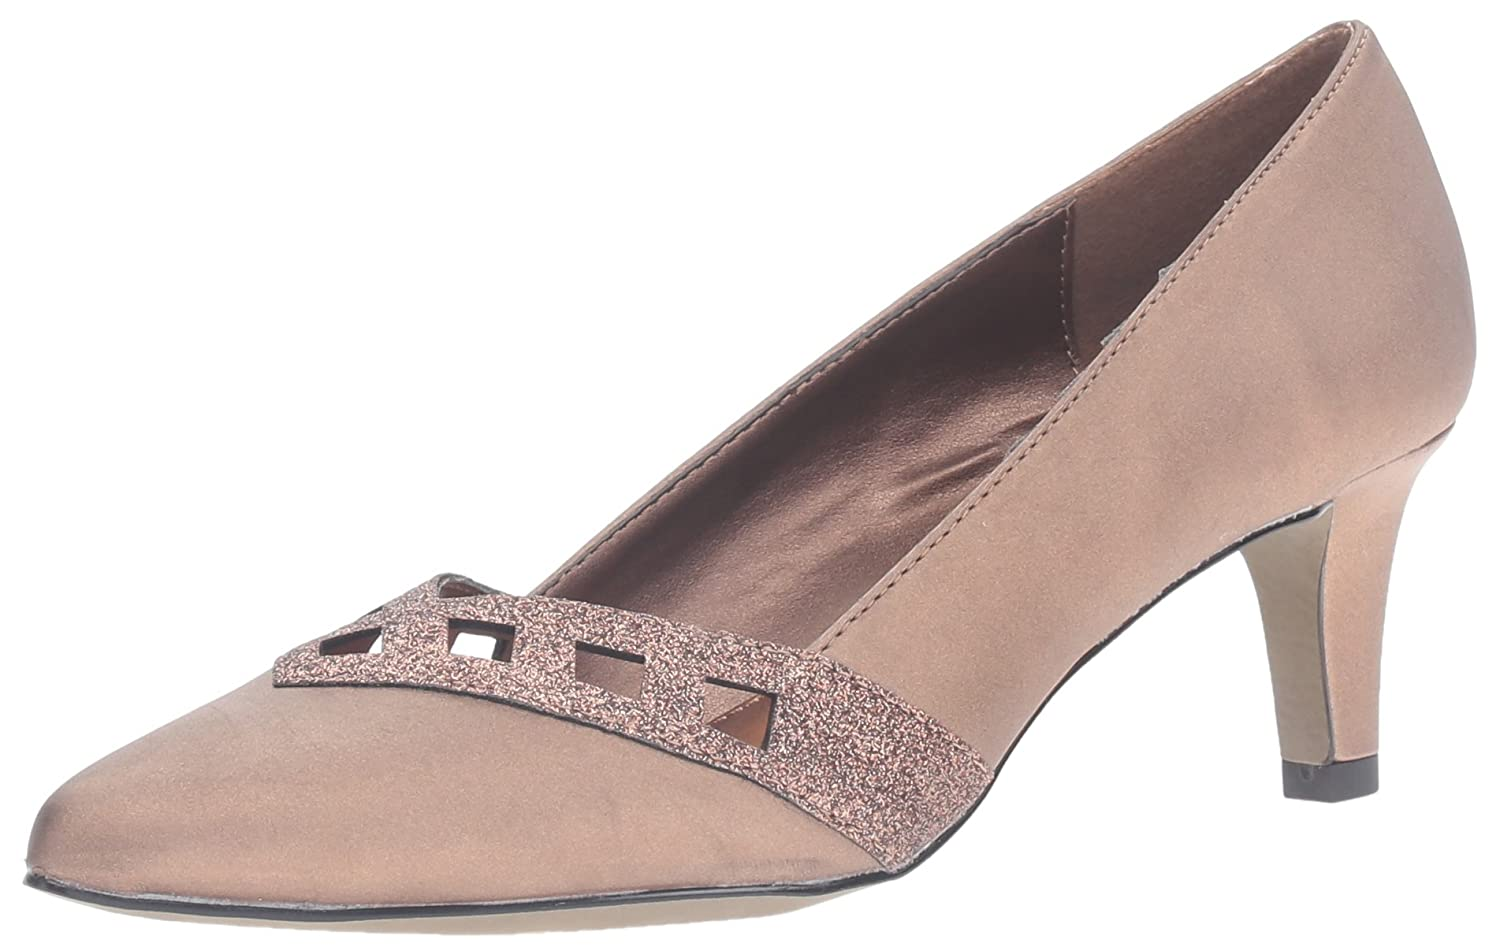 Easy Street Women's Valiant Dress Pump B01HSLSXEI 8.5 B(M) US|Bronze Satin/Glitter